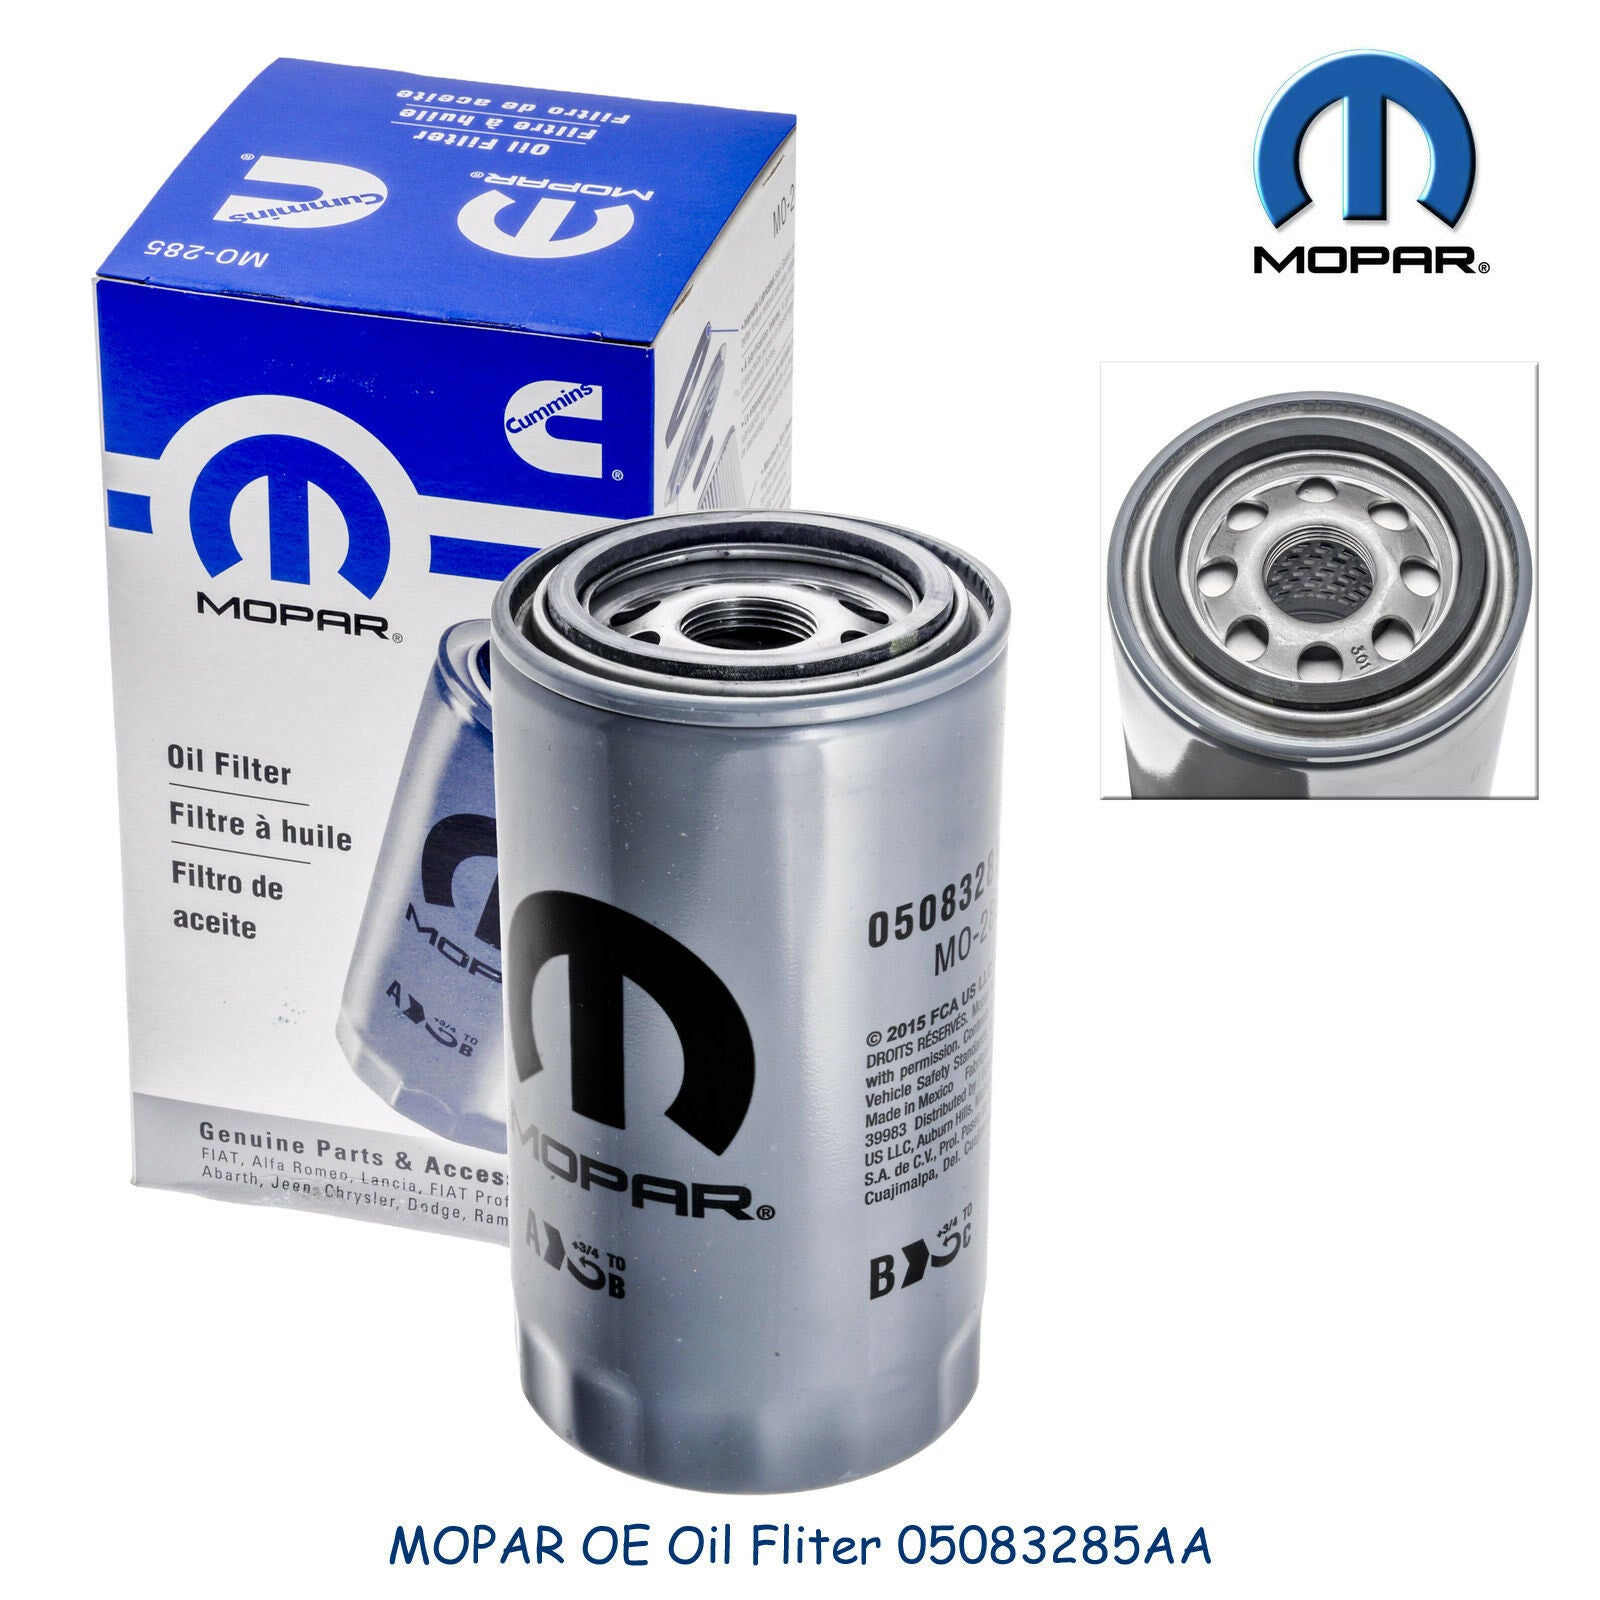 Diesel Oil Fuel Filter Kit Mopar Genuine 2013-2017 RAM 2500 3500 4500 5500 6.7L